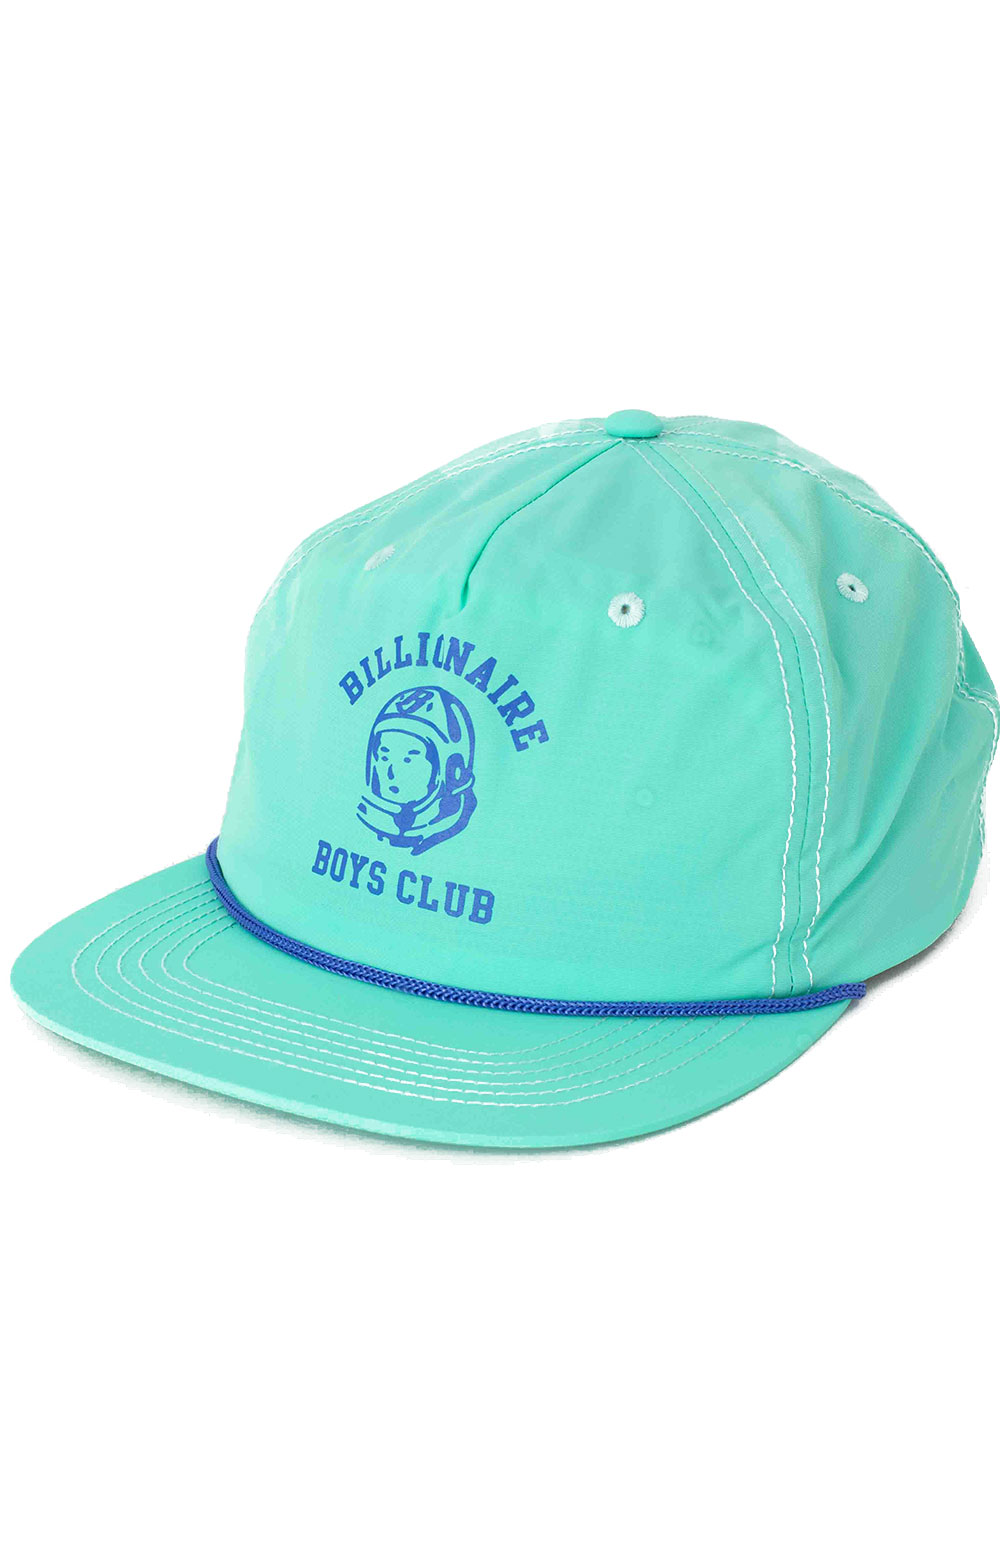 Clubhouse Snap-Back Hat - Spring Bud